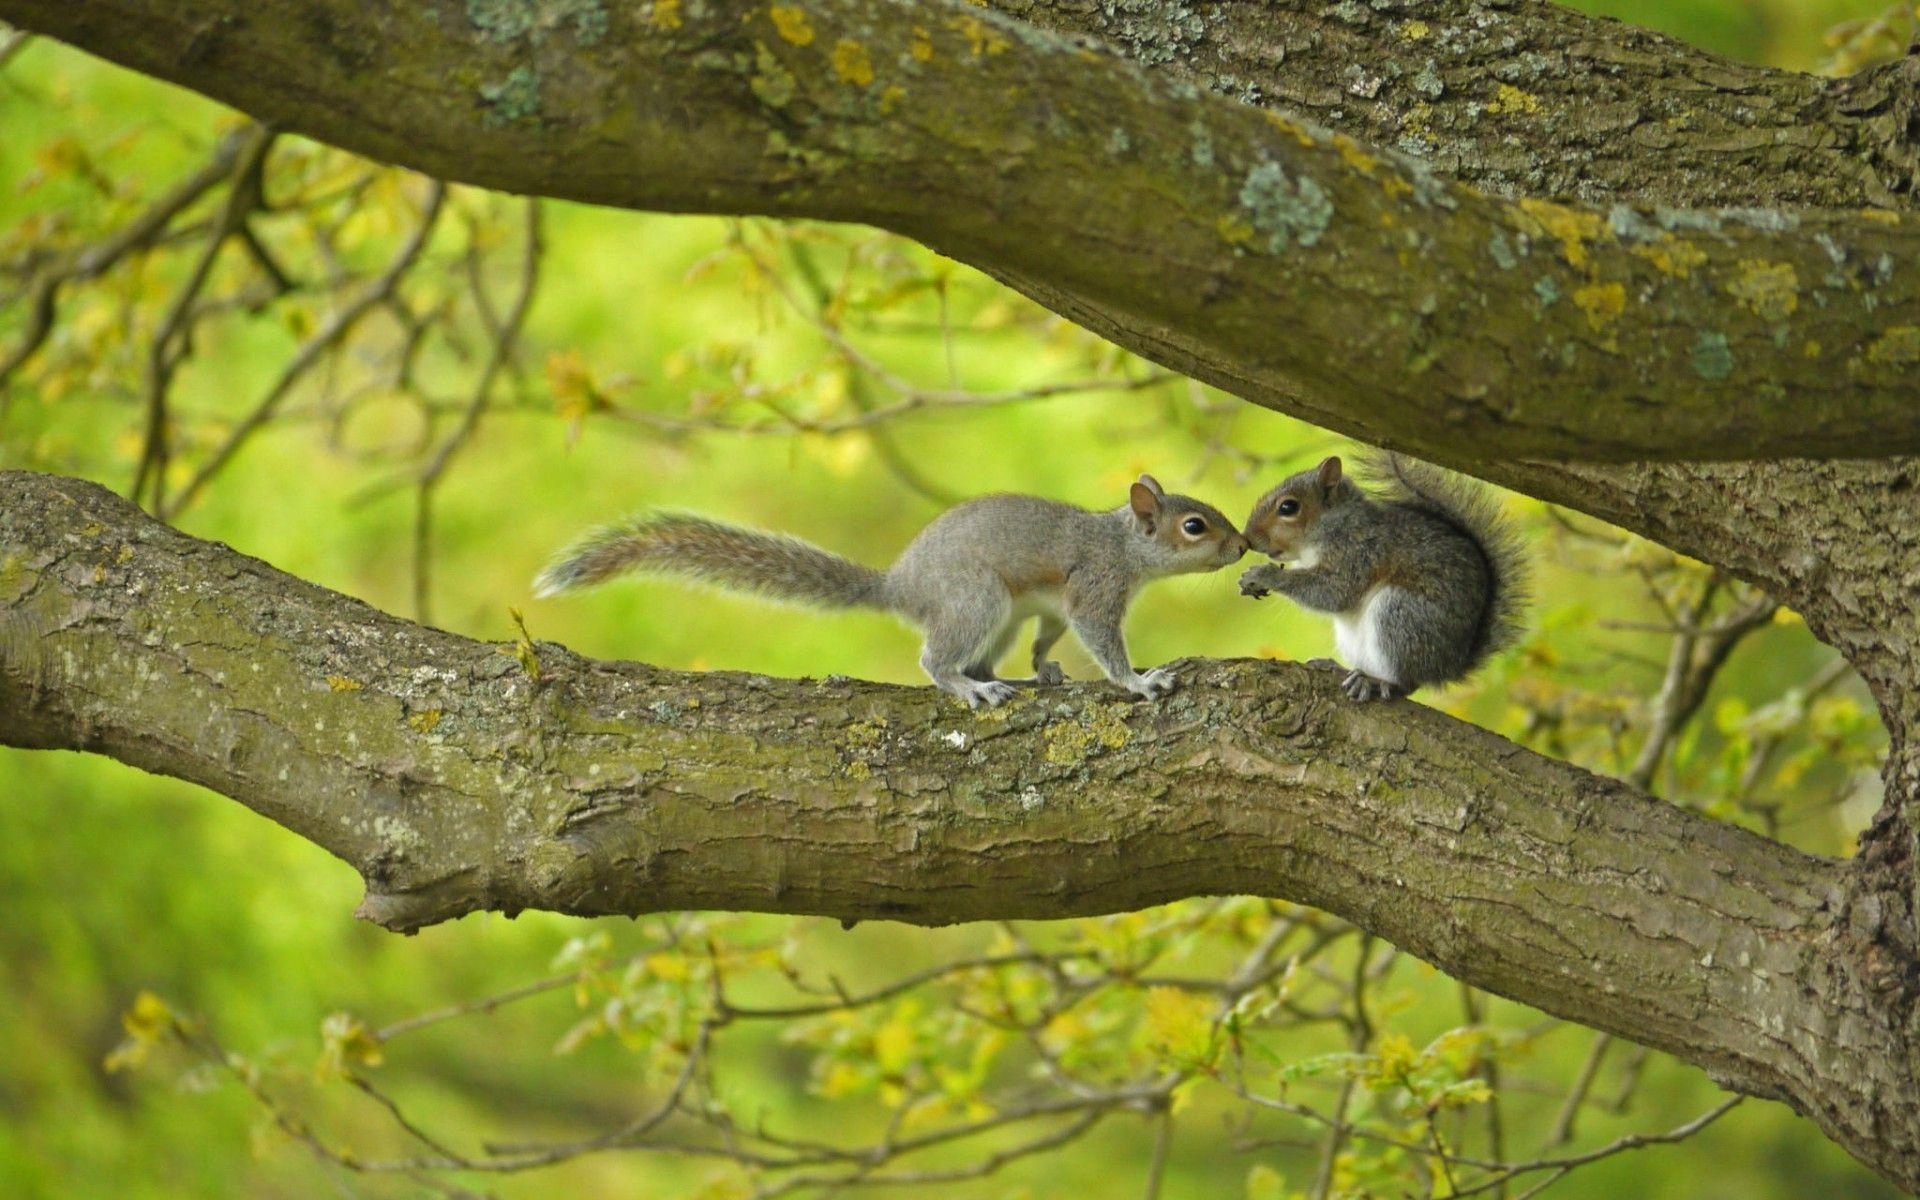 Animated Happy New Year D Hd Squirrels Kissing In The Tree Wallpaper Download Free